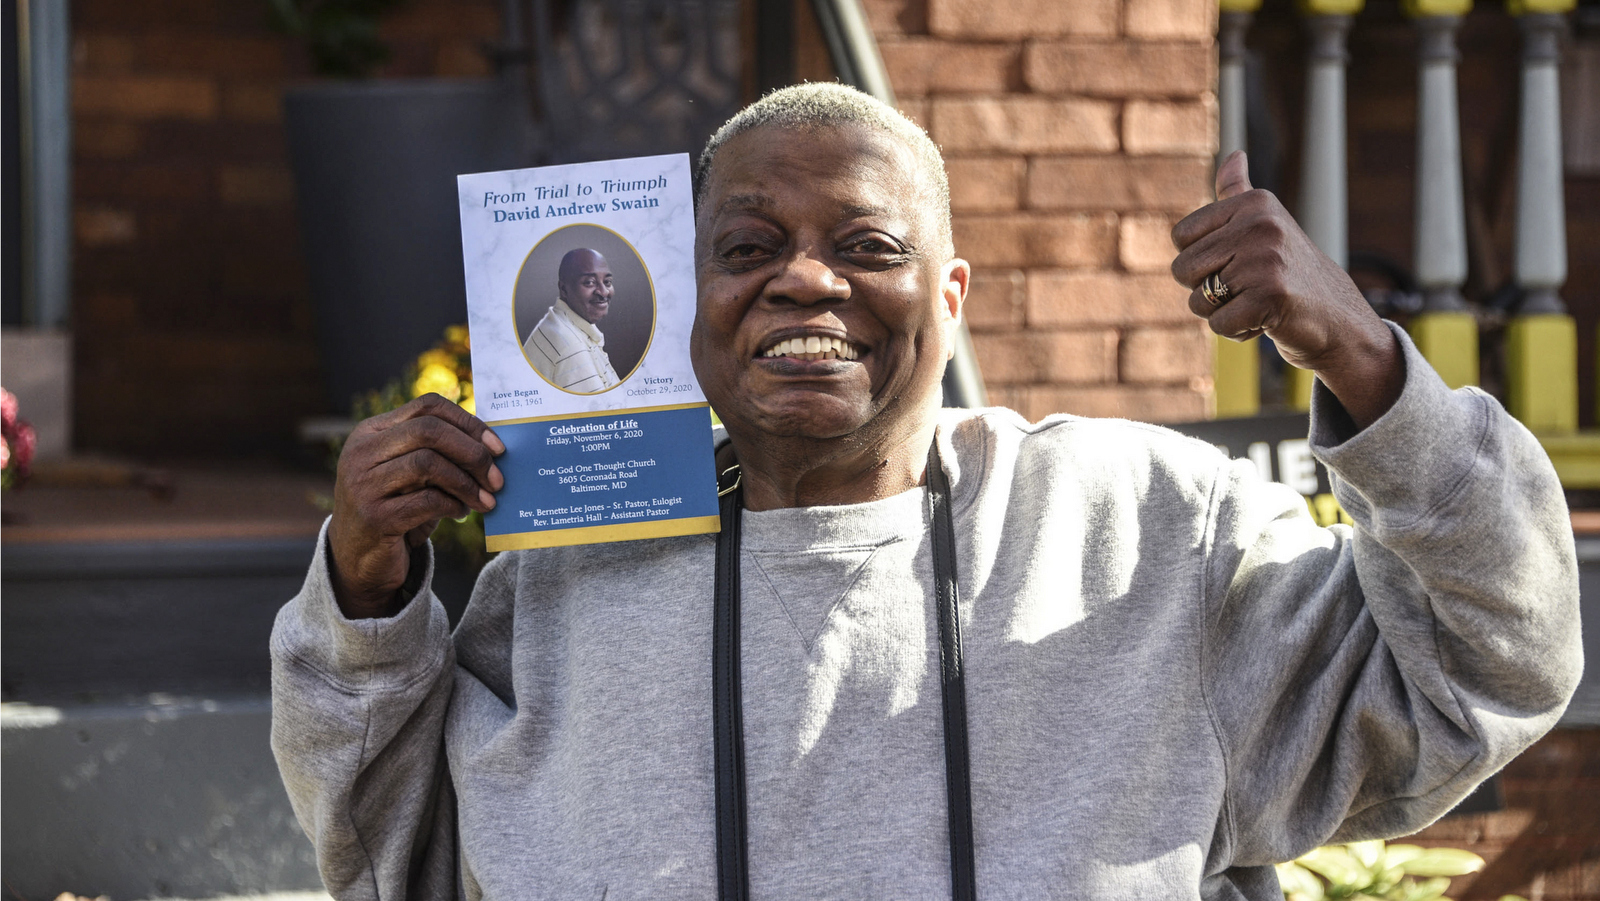 In Baltimore's Charles Village, holds up a photo of her late brother David Swain, who voted for Joe Biden the day before he died. (J.M. Giordano)